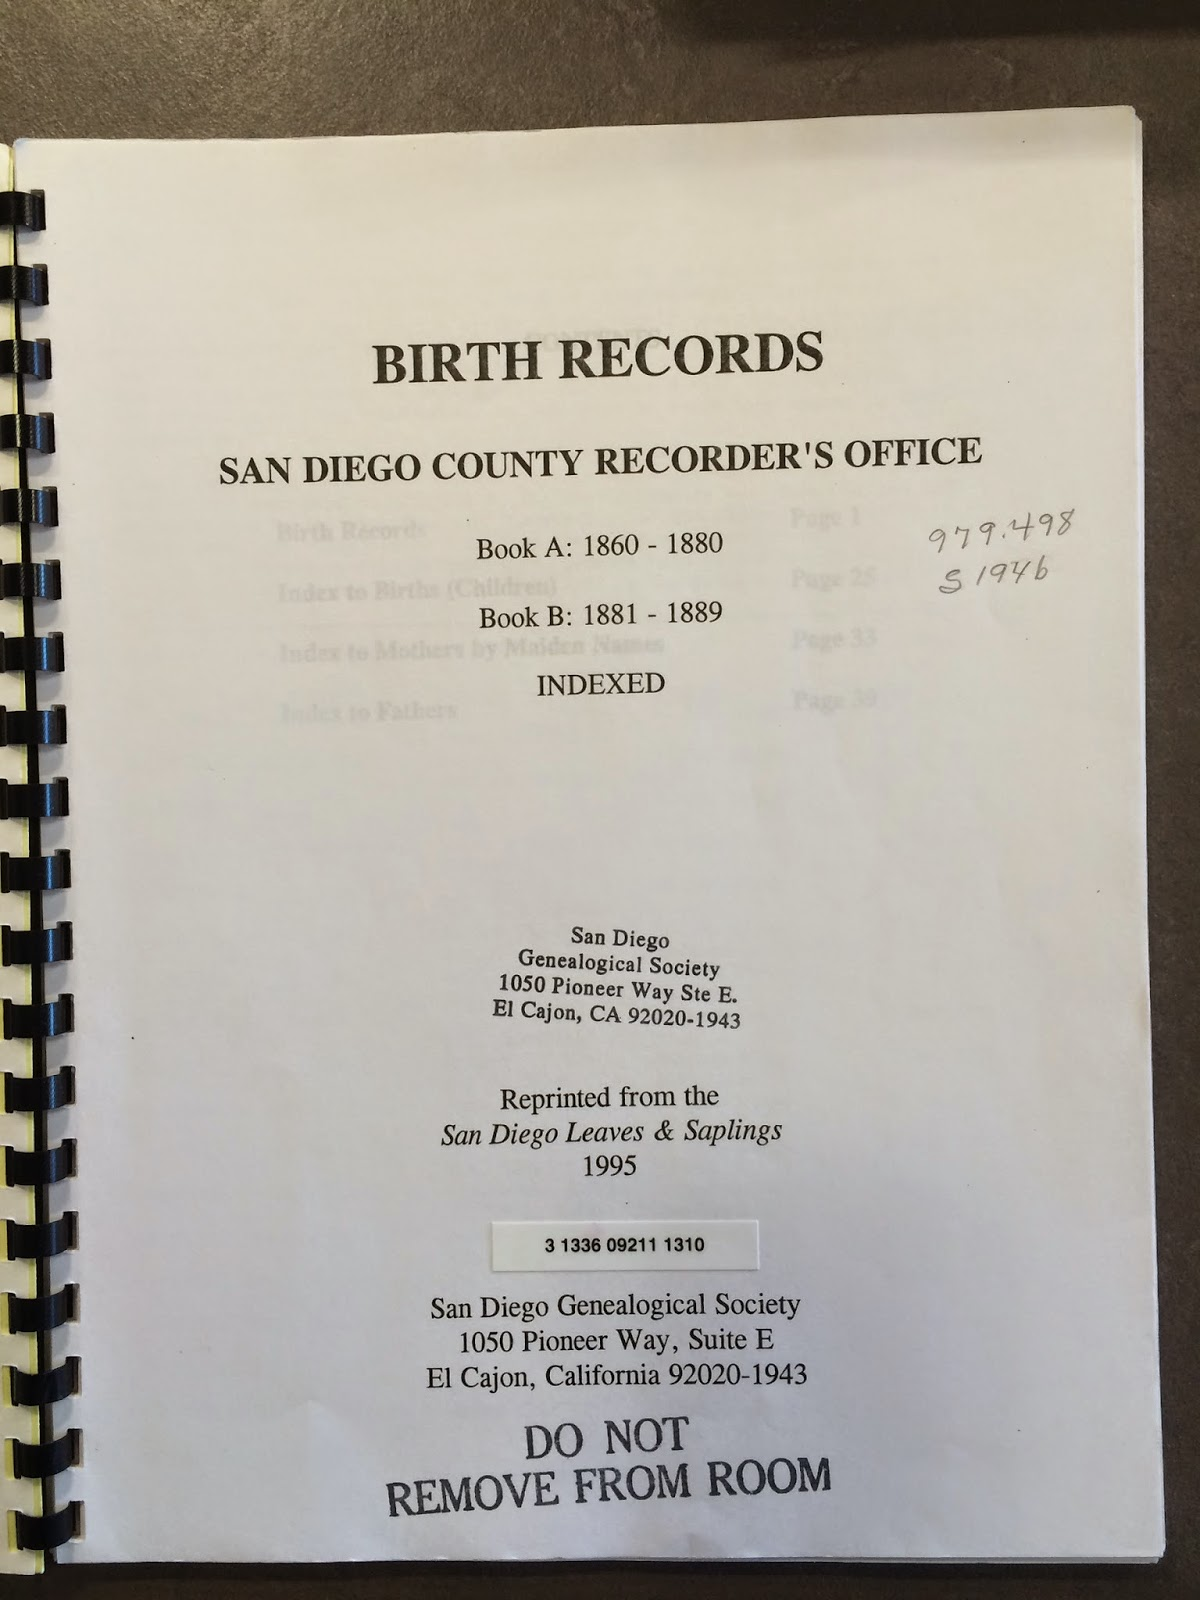 Genea musings 1 san diego county birth records 1860 1889 compiled by san diego genealogical society aiddatafo Images